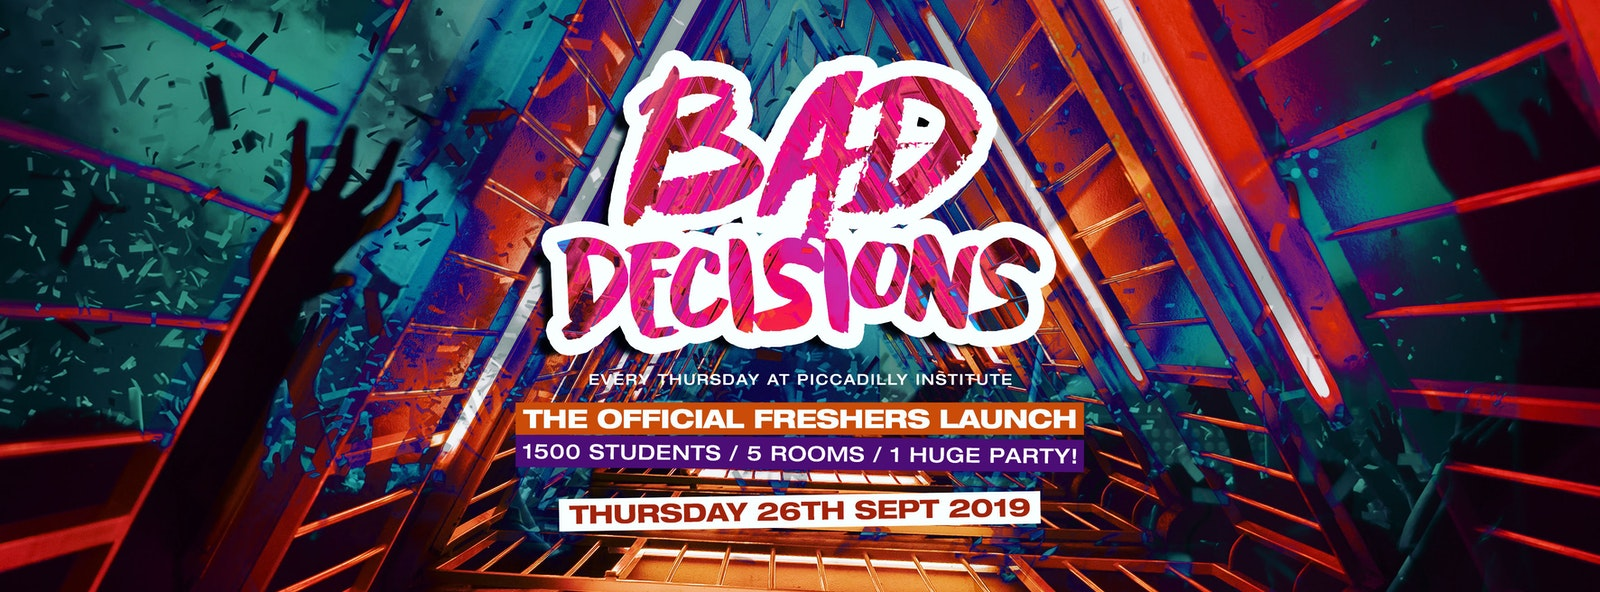 BAD DECISIONS FRESHERS LAUNCH PART 2 @ PICCADILLY INSTITUTE LONDON